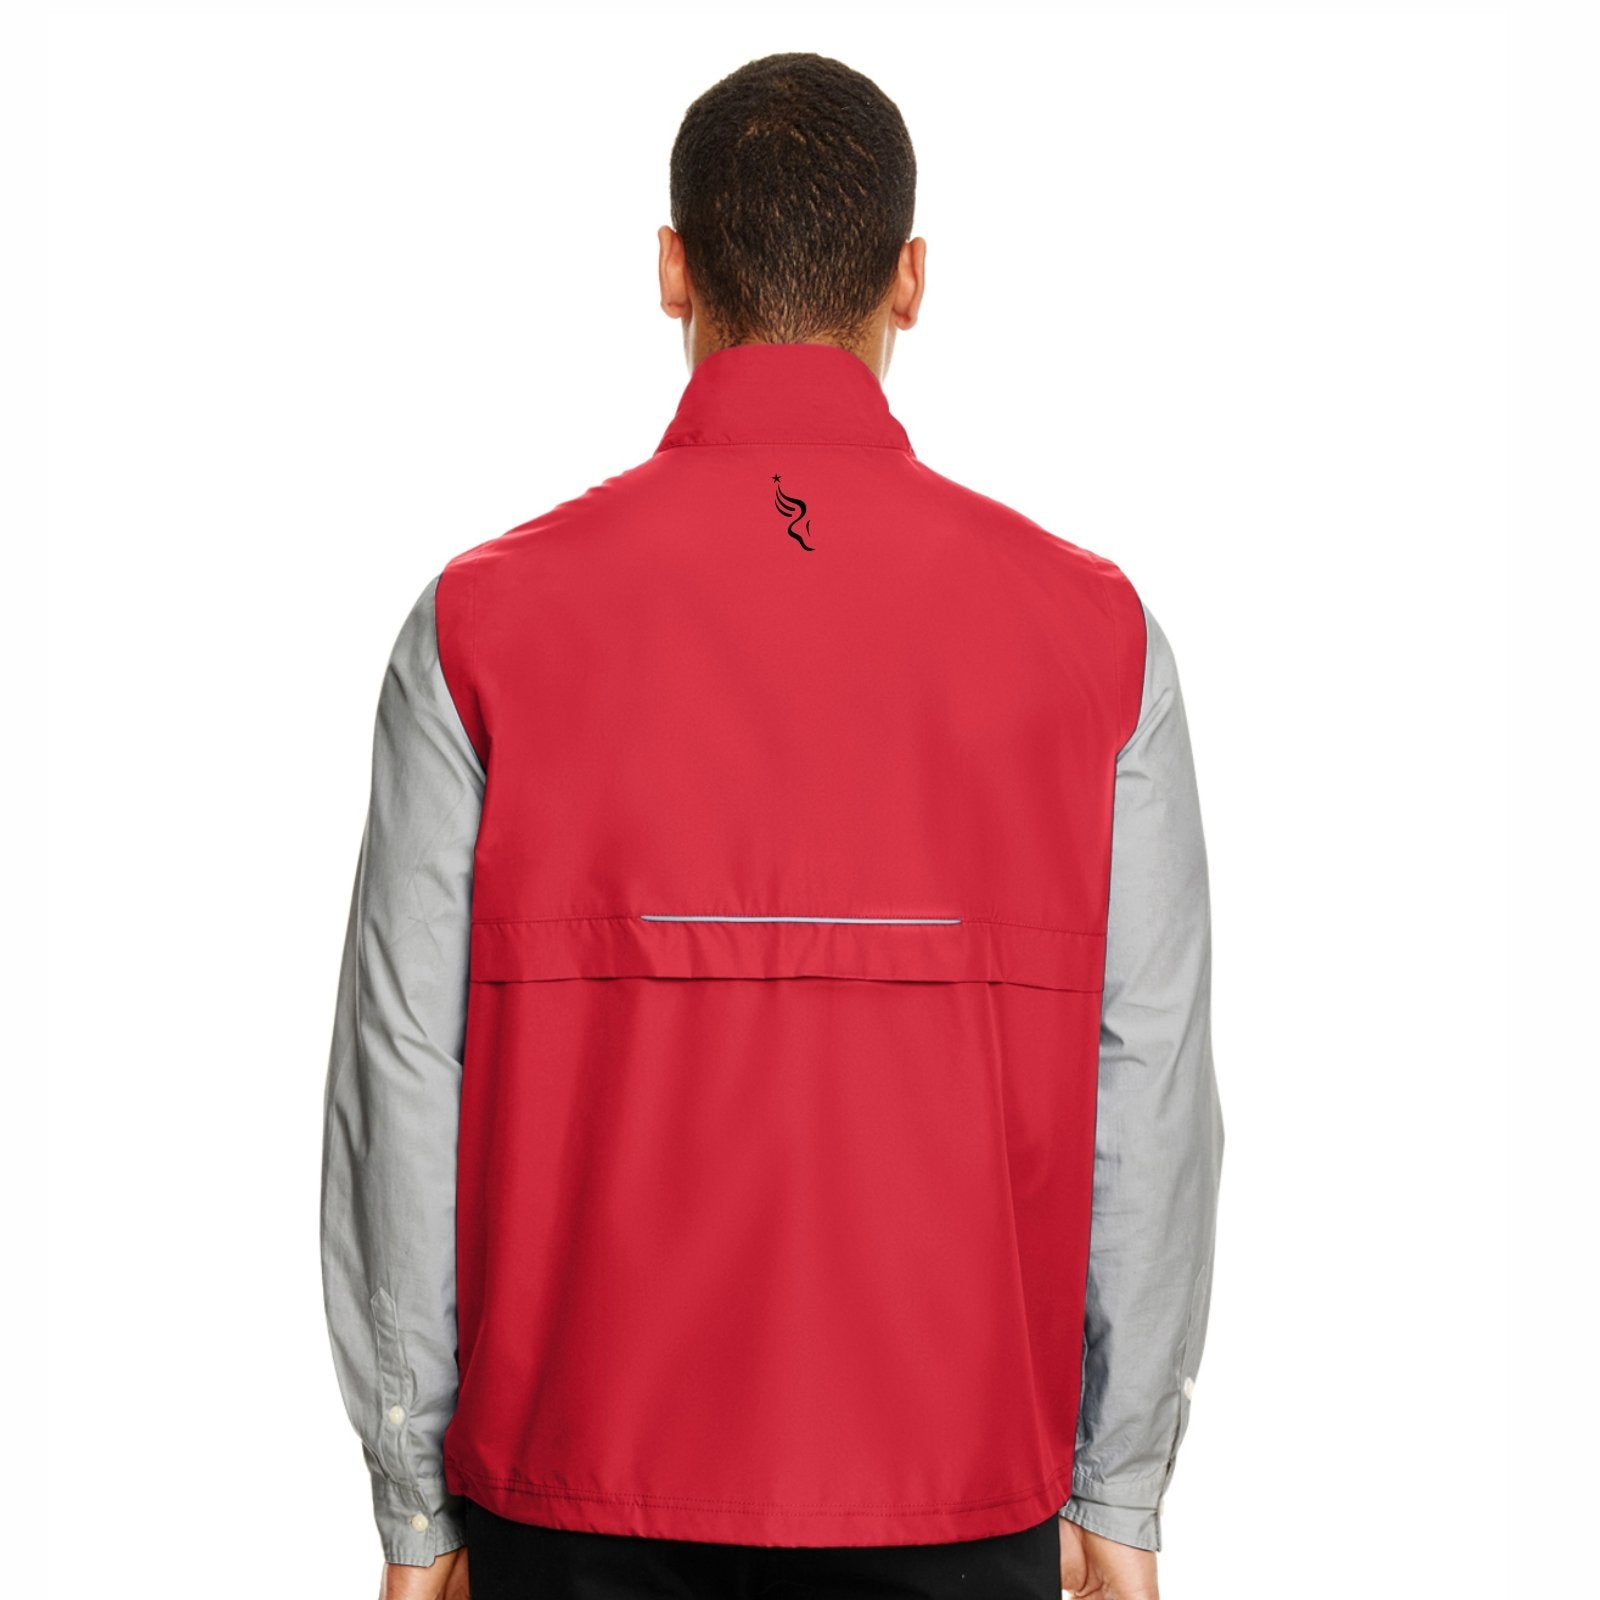 Men's Water-Resistant Tech Zip Vest -Classic Red 'Left Chest Embr. Design' - AACR Philadelphia Marathon